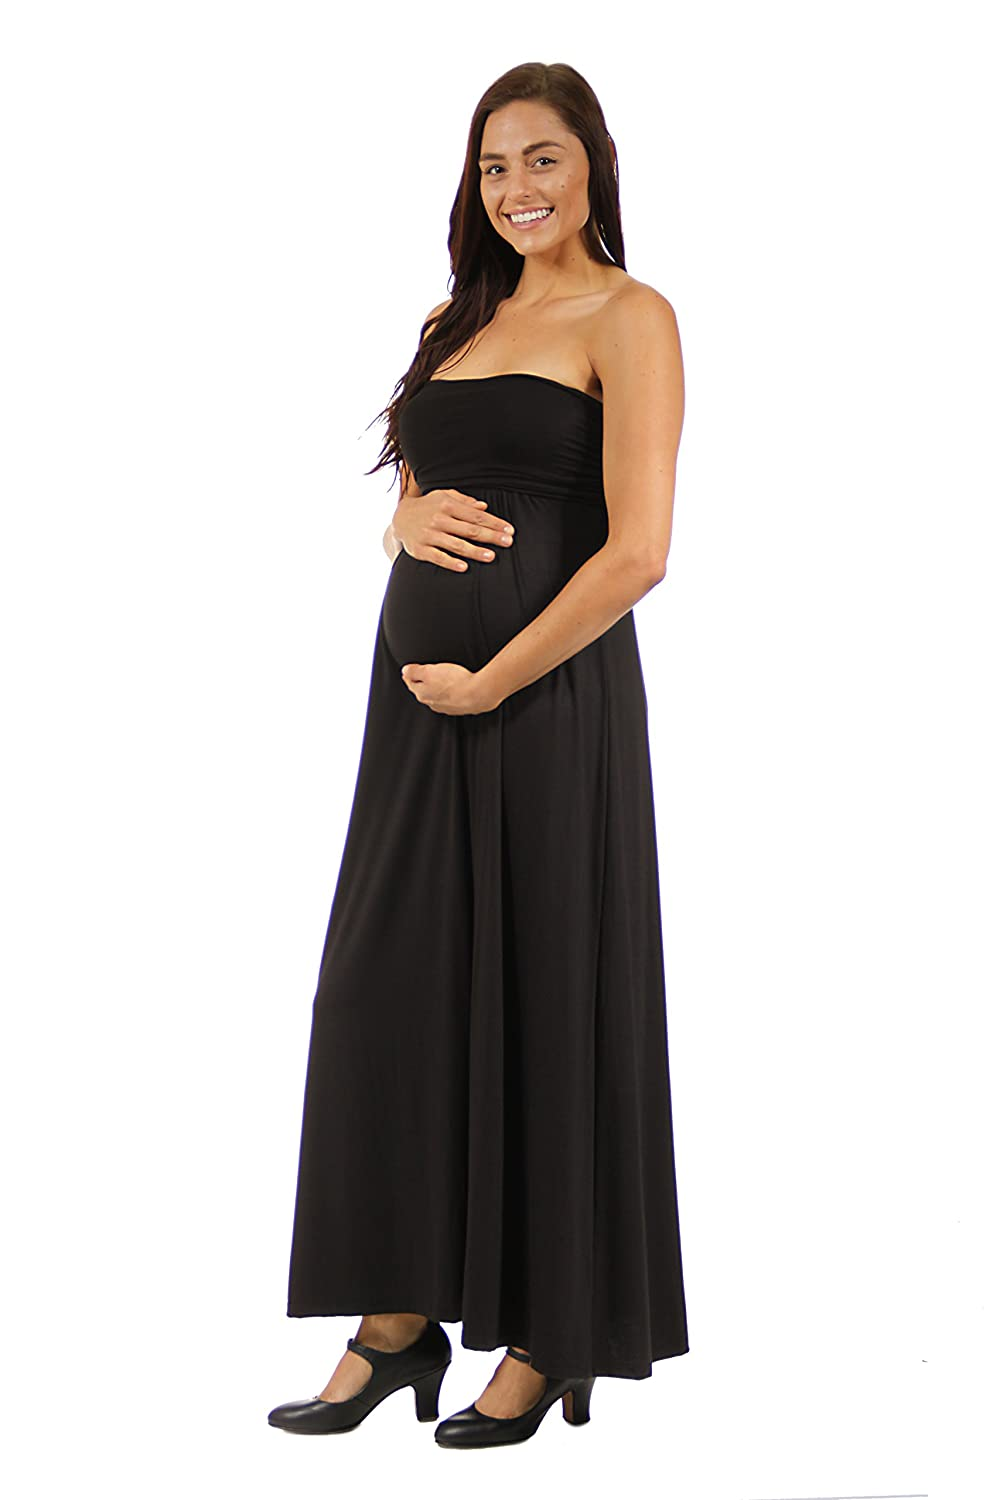 87d6da888f4 24 7 Comfort Apparel Maternity Dress Strapless Maxi Tube Dress Pregnancy  Clothes -  Made in USA  at Amazon Women s Clothing store